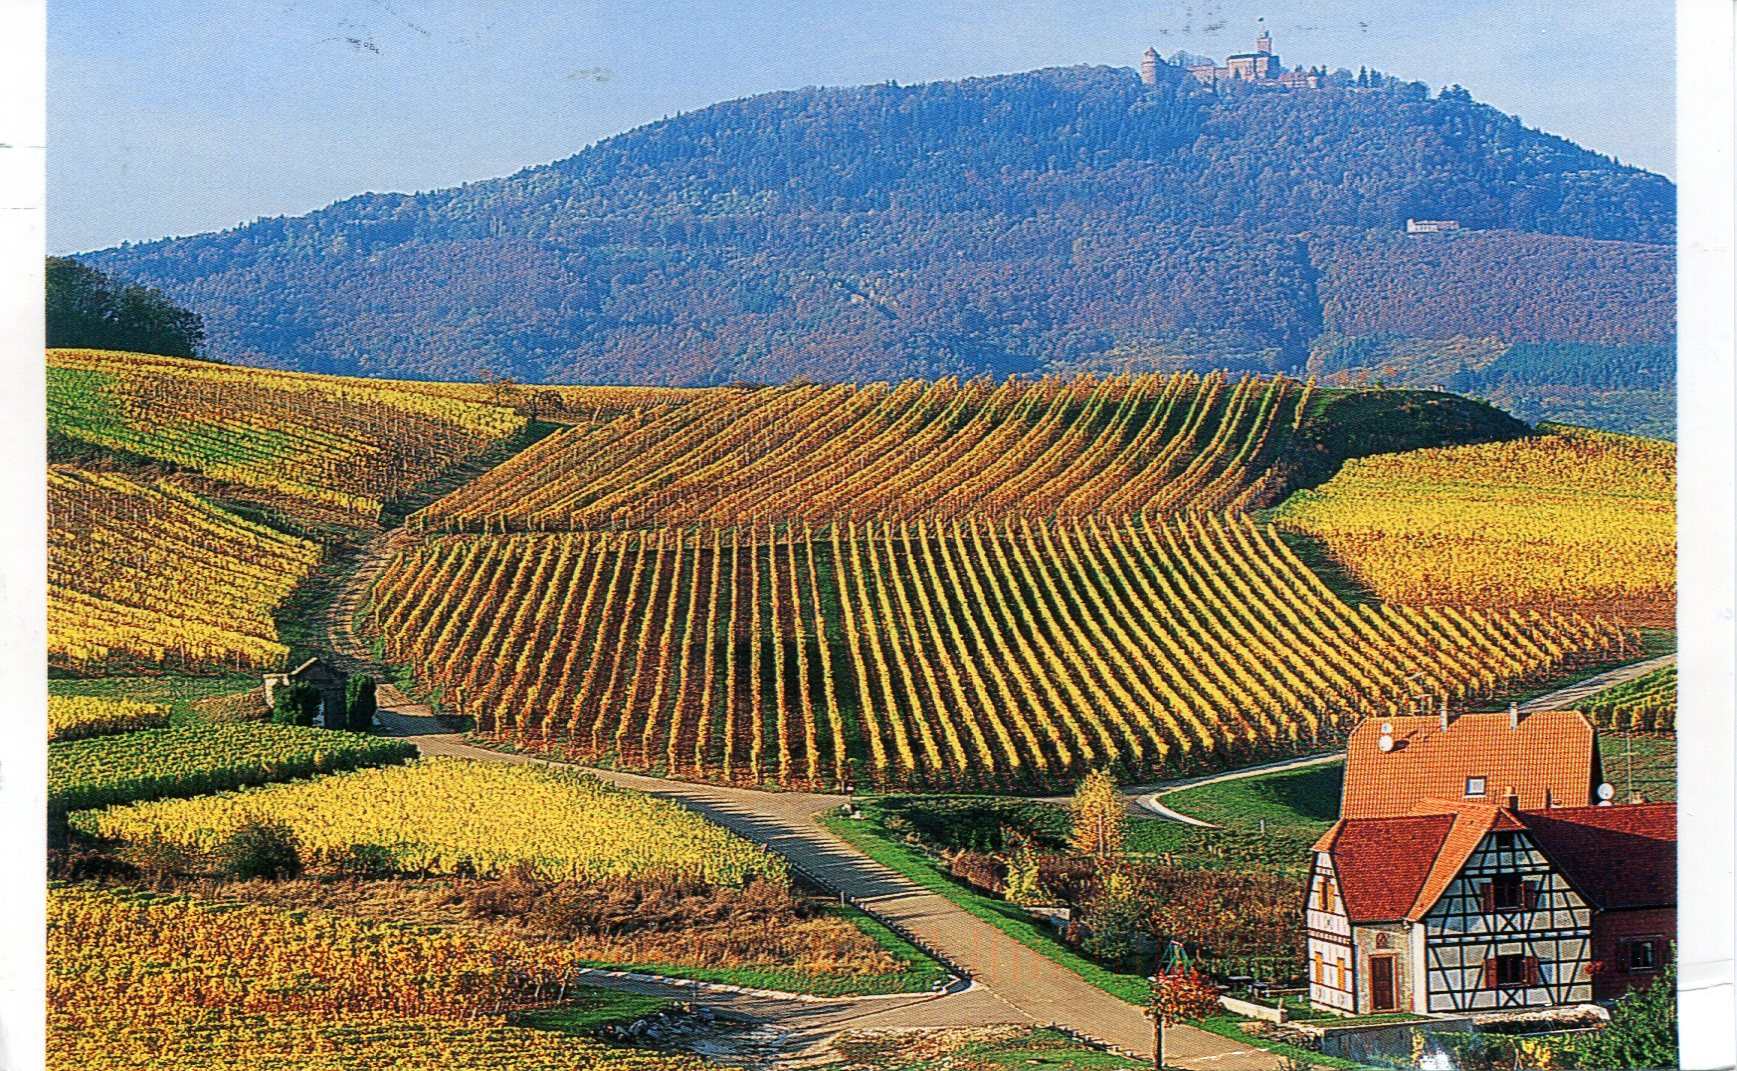 france alsace vinyards